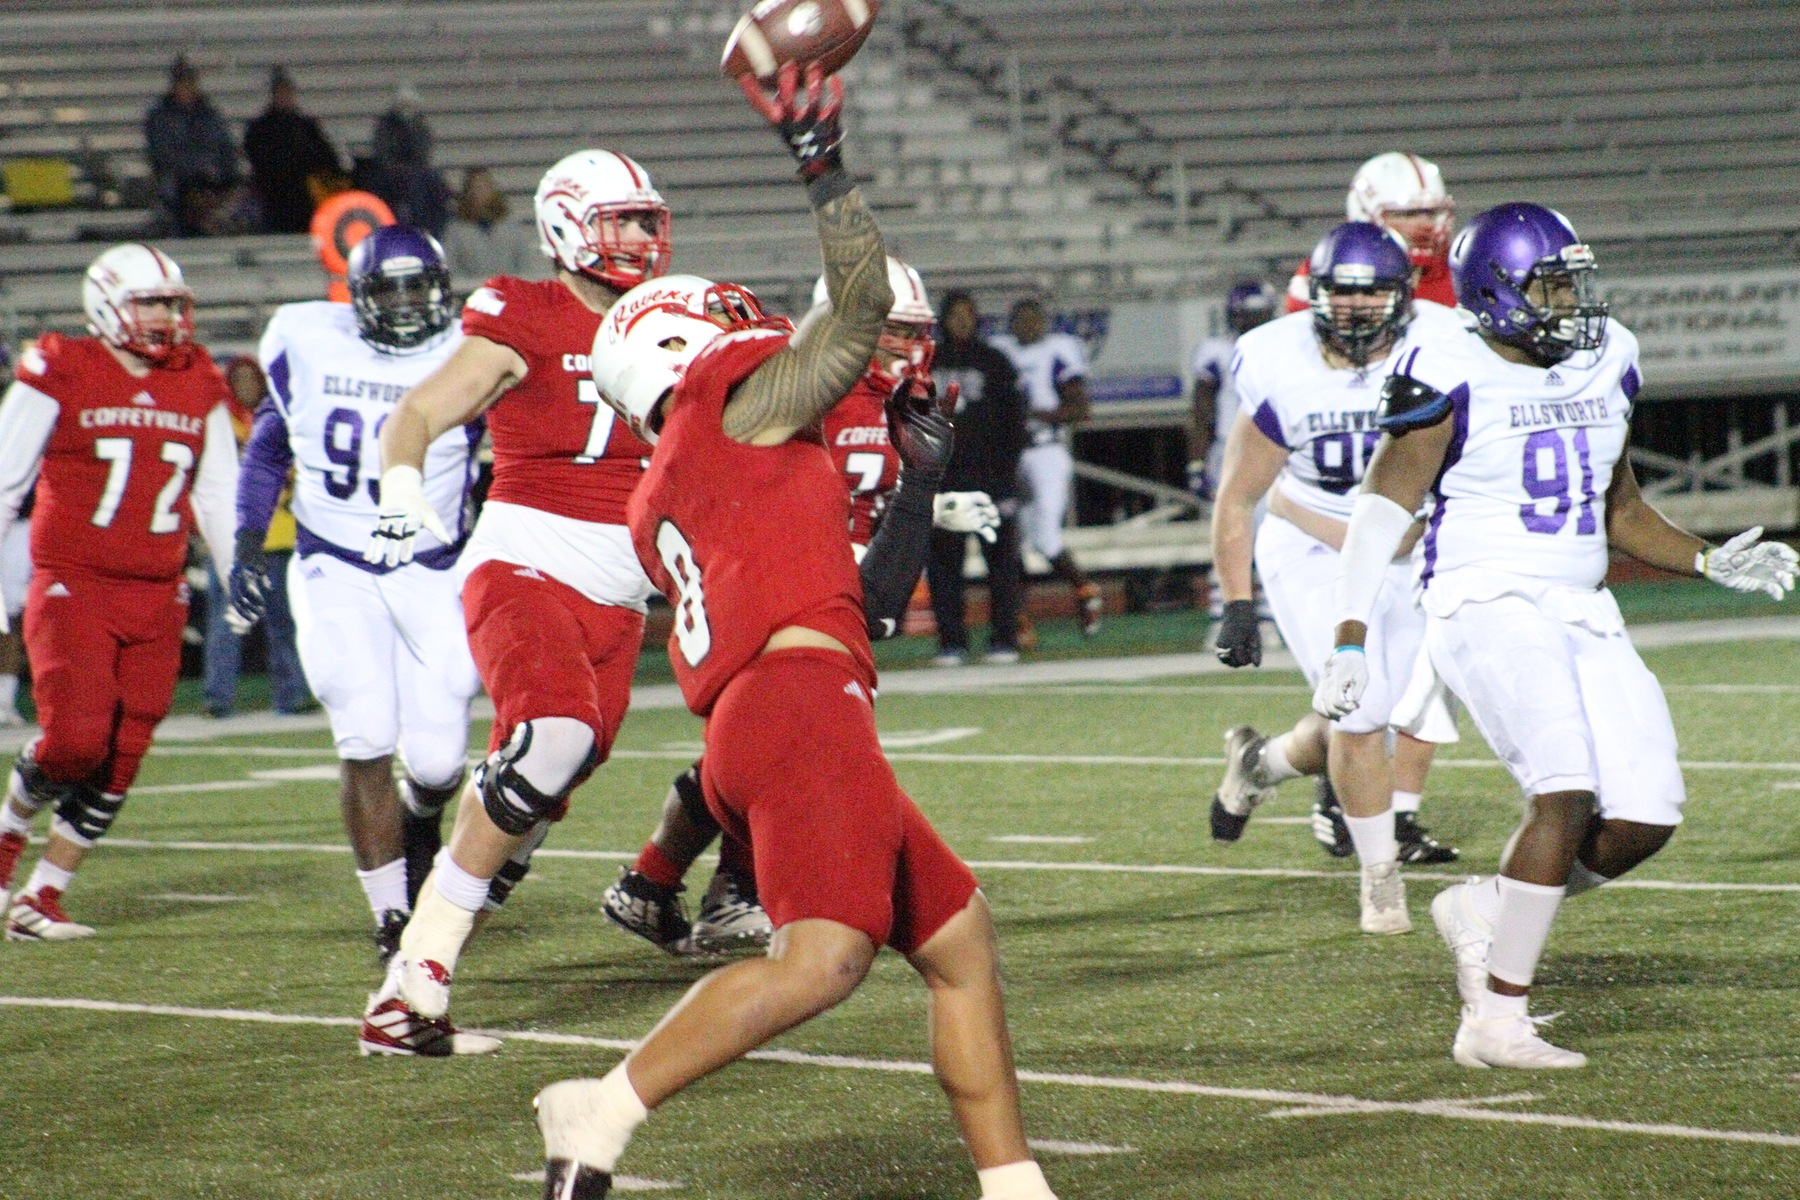 Red Raven Football Finishes Season Strong, Beats Ellsworth 30-13 in Homecoming Game